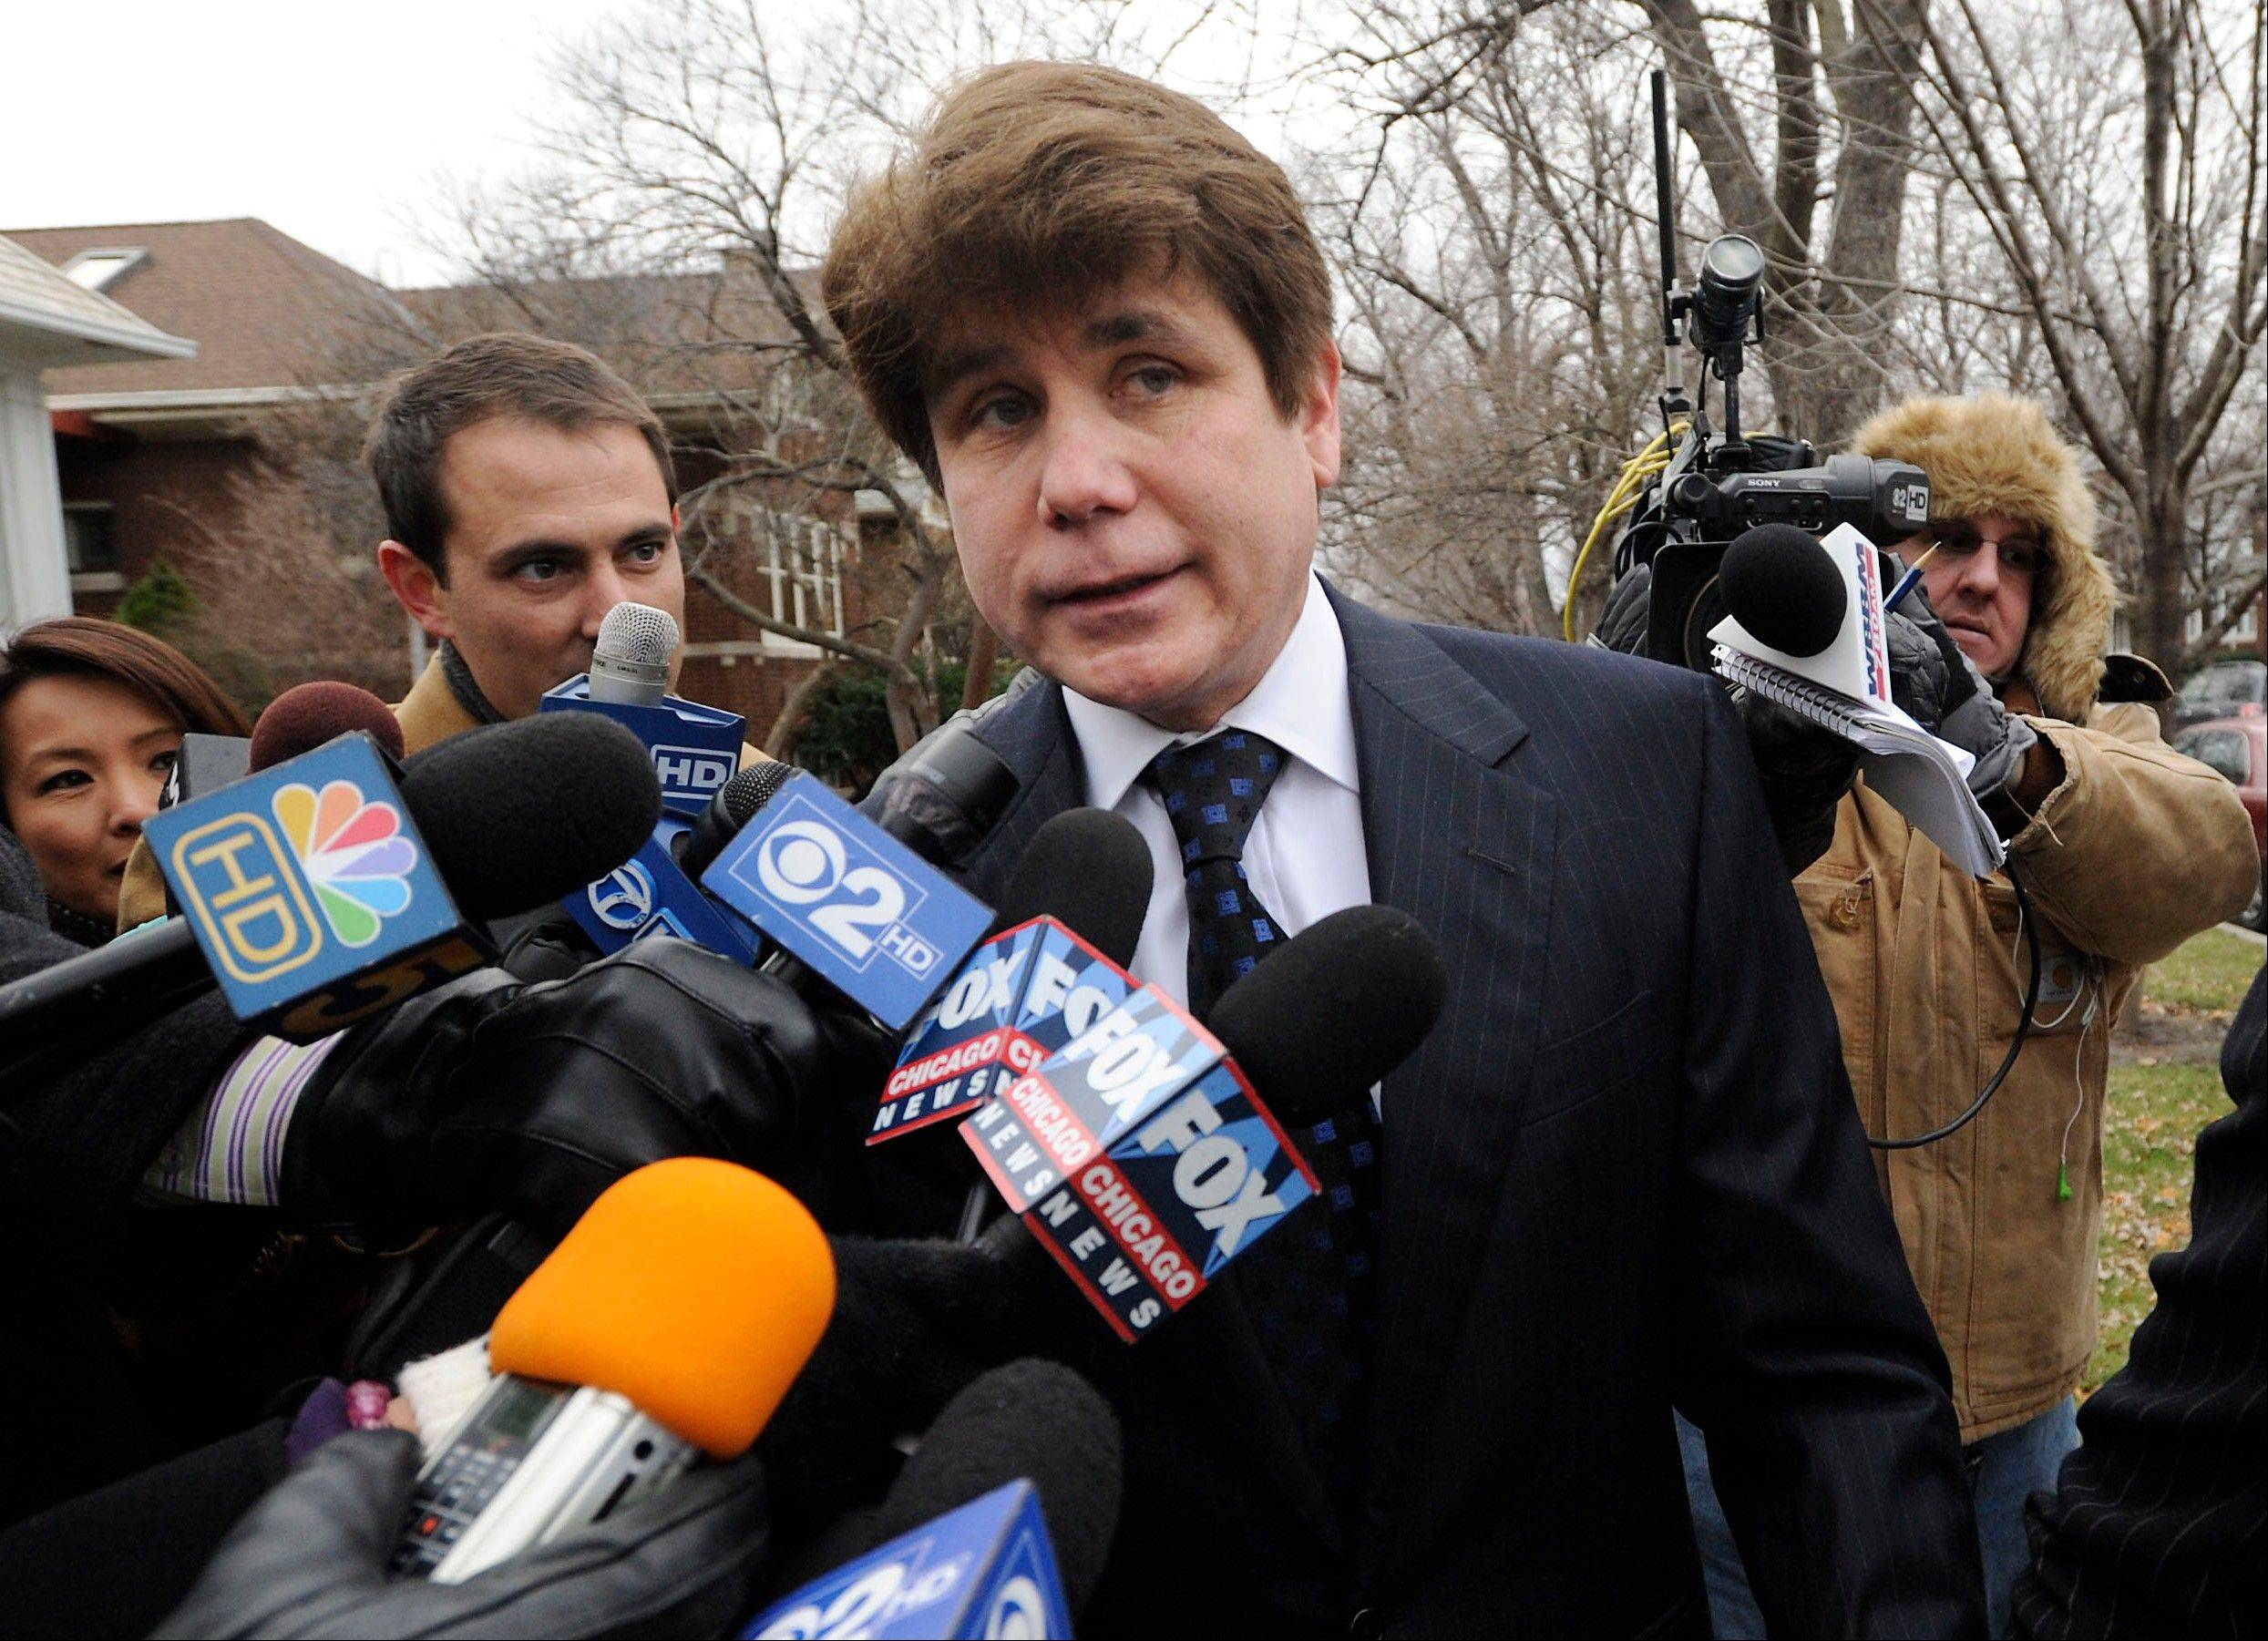 Former Illinois Gov. Rod Blagojevich heads to federal court for his sentencing hearing earlier this month.